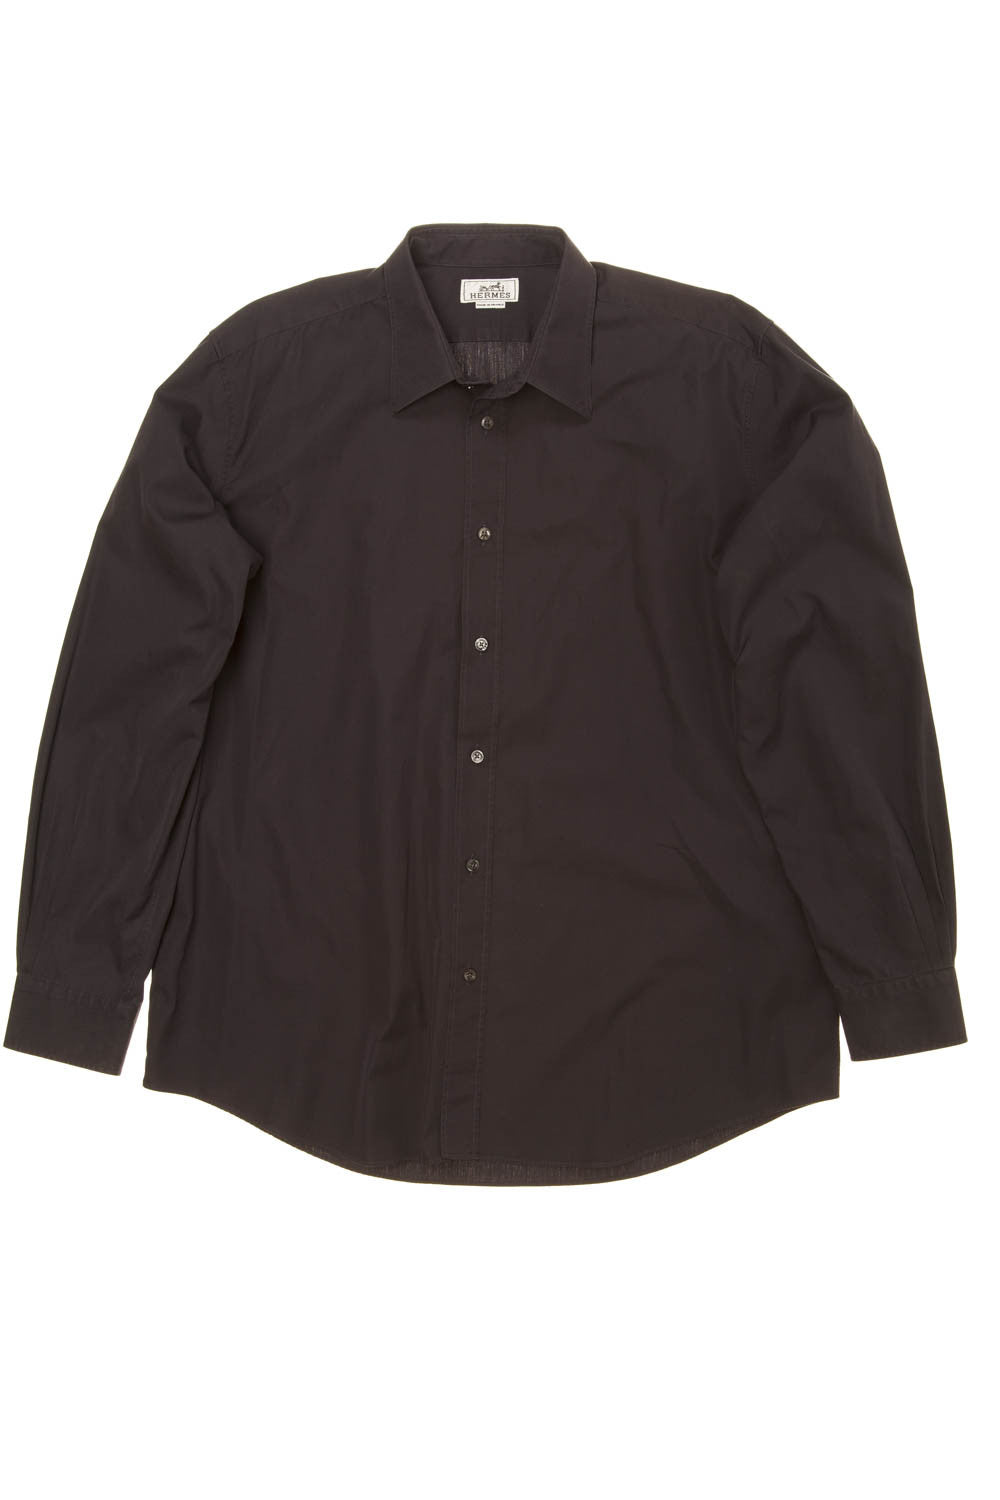 Hermes - Midnight Blue Dress Shirt - IT 43